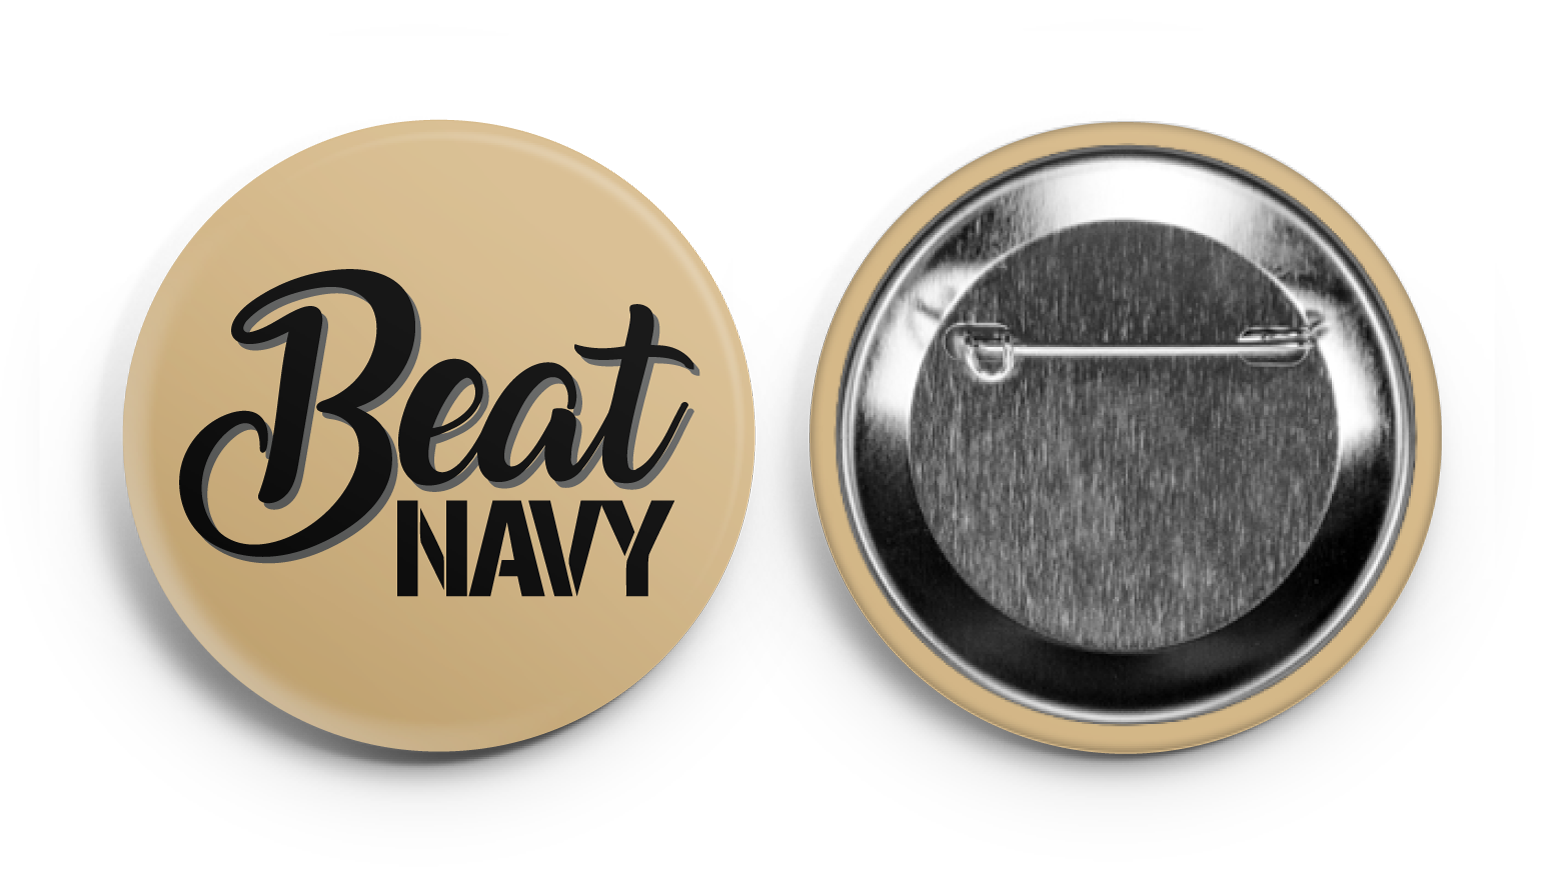 Beat Navy! Army Supporter Button